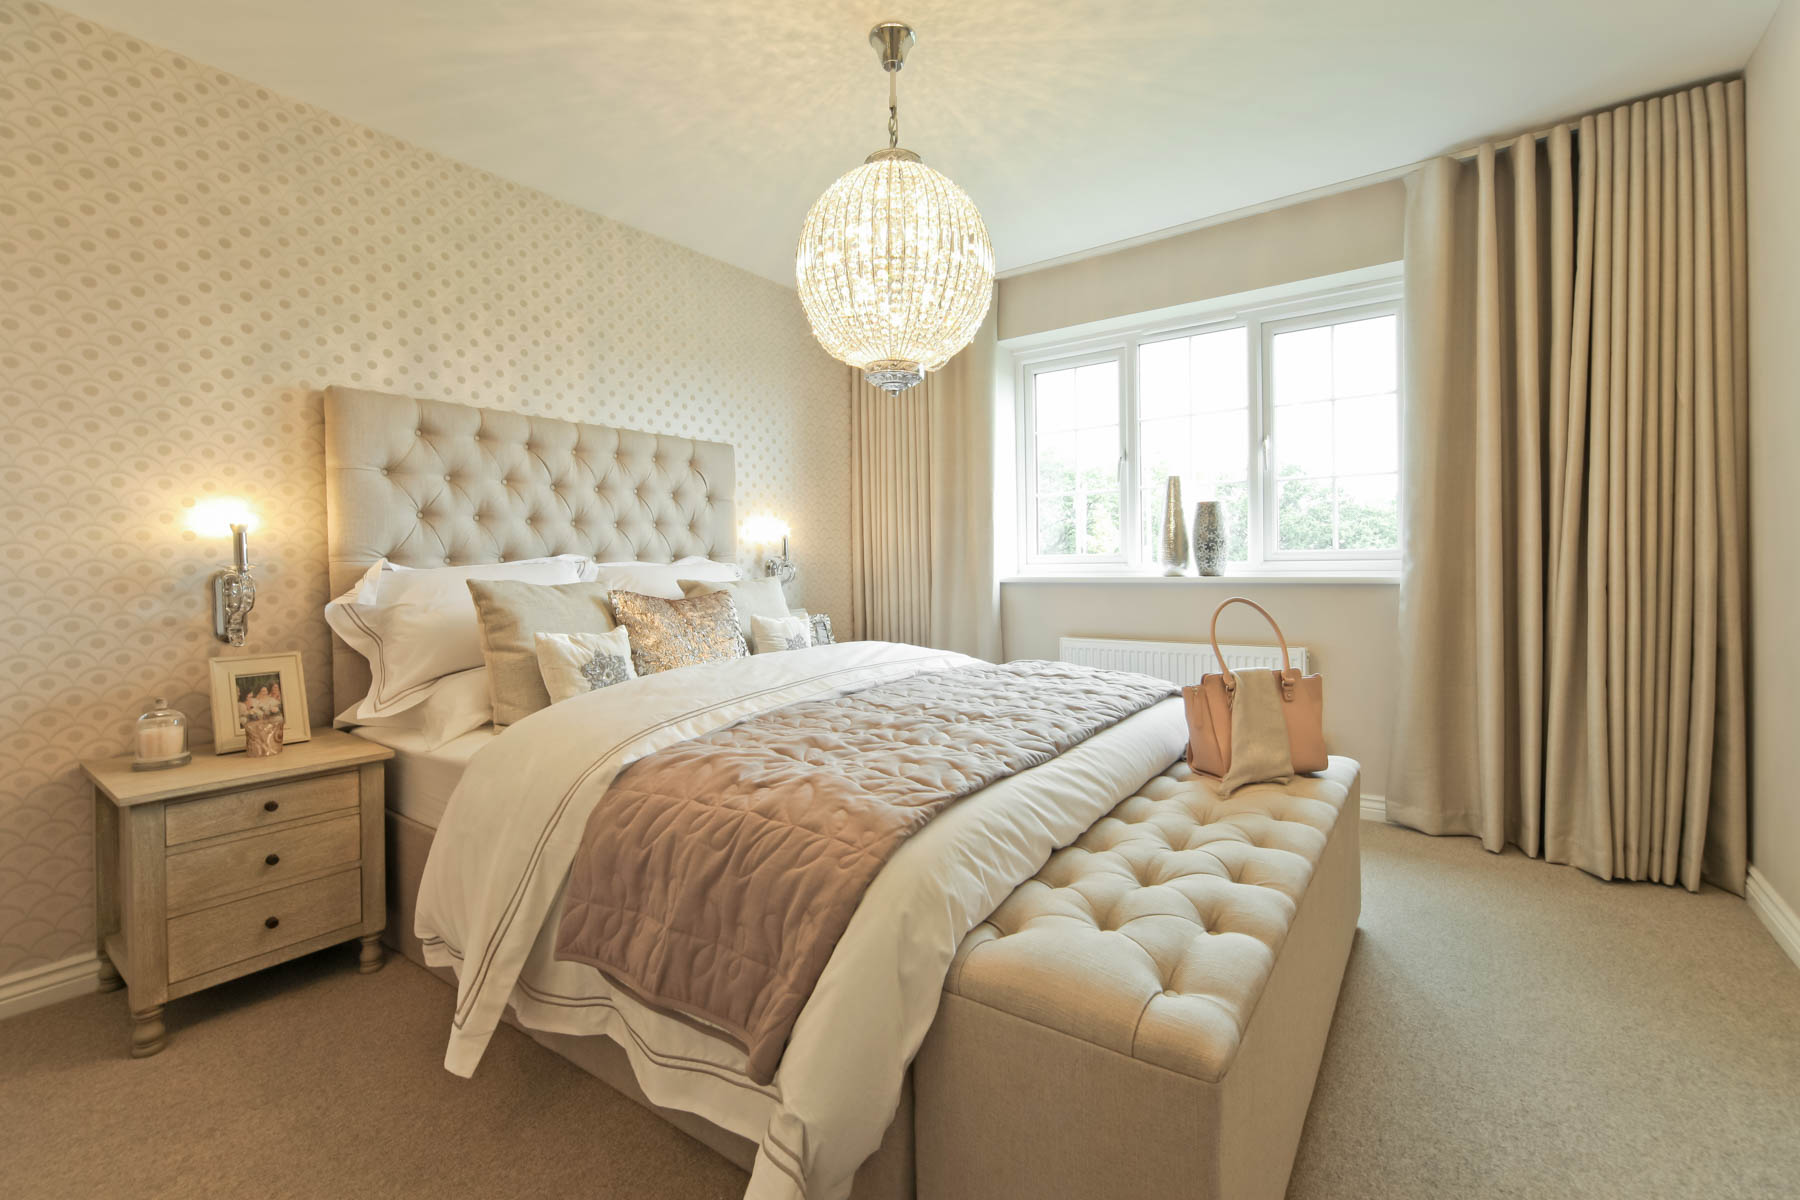 012_OM_Eynsham_Master_Bedroom